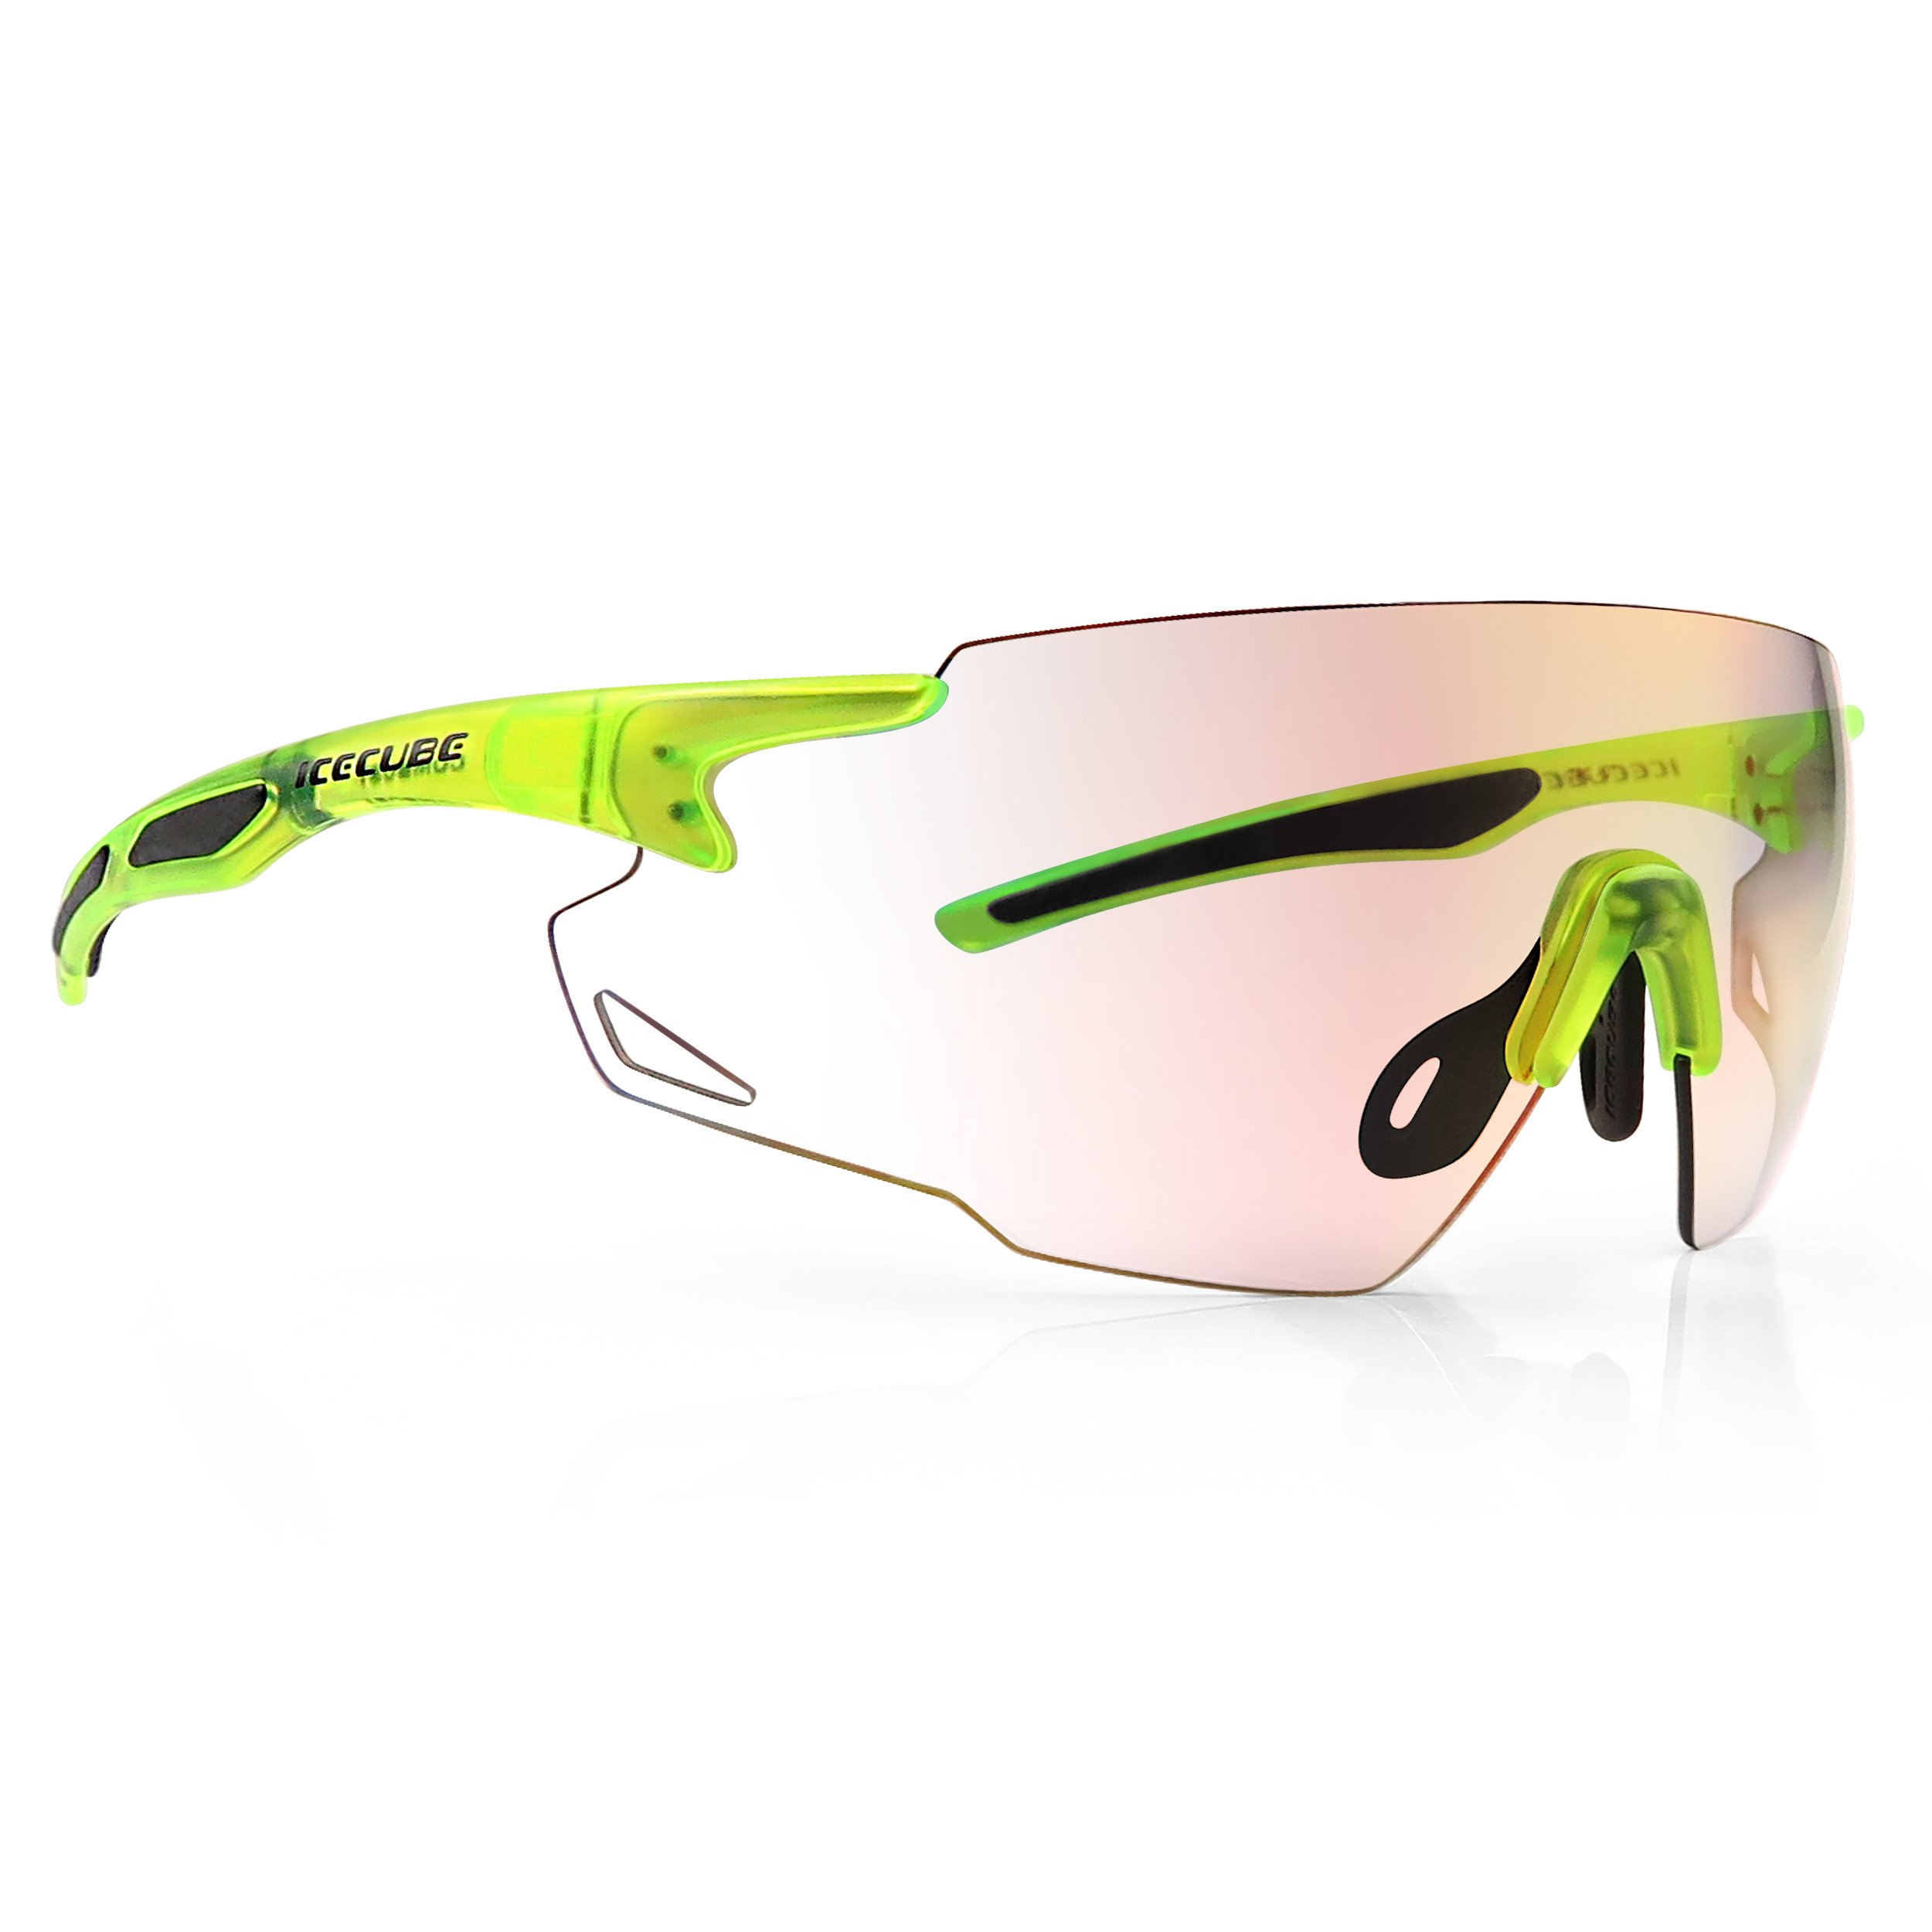 ICECUBE Asian Fit Photochromic Sports Sunglasses | Men or Women| UV Protection | TR90 Ultra Light | Suitable for Running, Driving, Beach, Fishing - COMBUST (Matte Crystal Neon Yellow, Red Mirror)